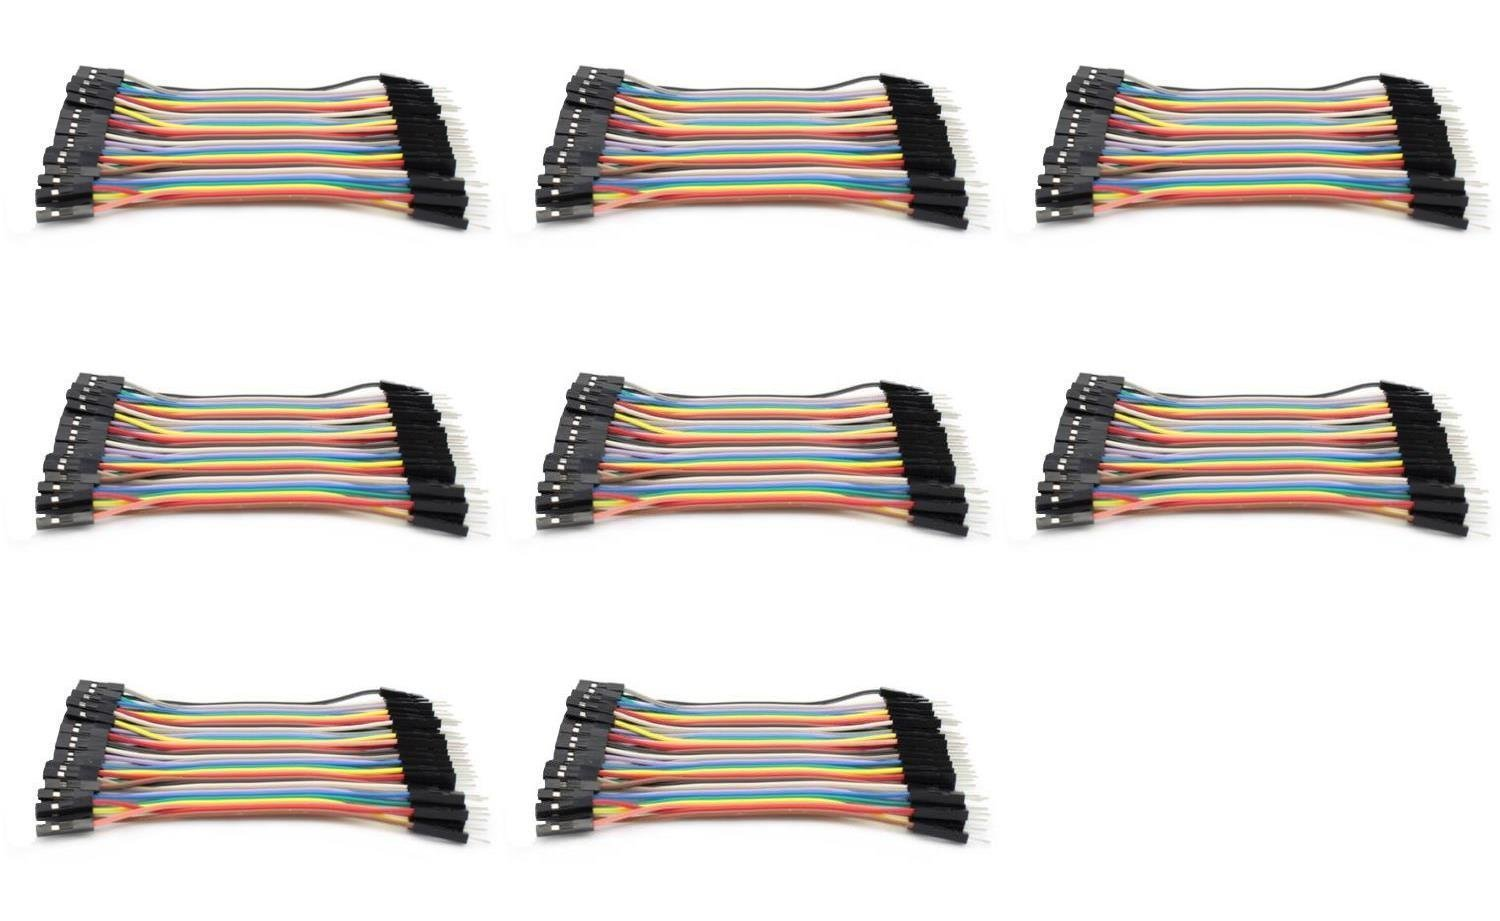 8 x Quantity of DJI S1000 Dupont 40 Qty 10cm 2.54mm 1pin Female to Male Jumper Wire Cables - FAST FROM Orlando, Florida USA!